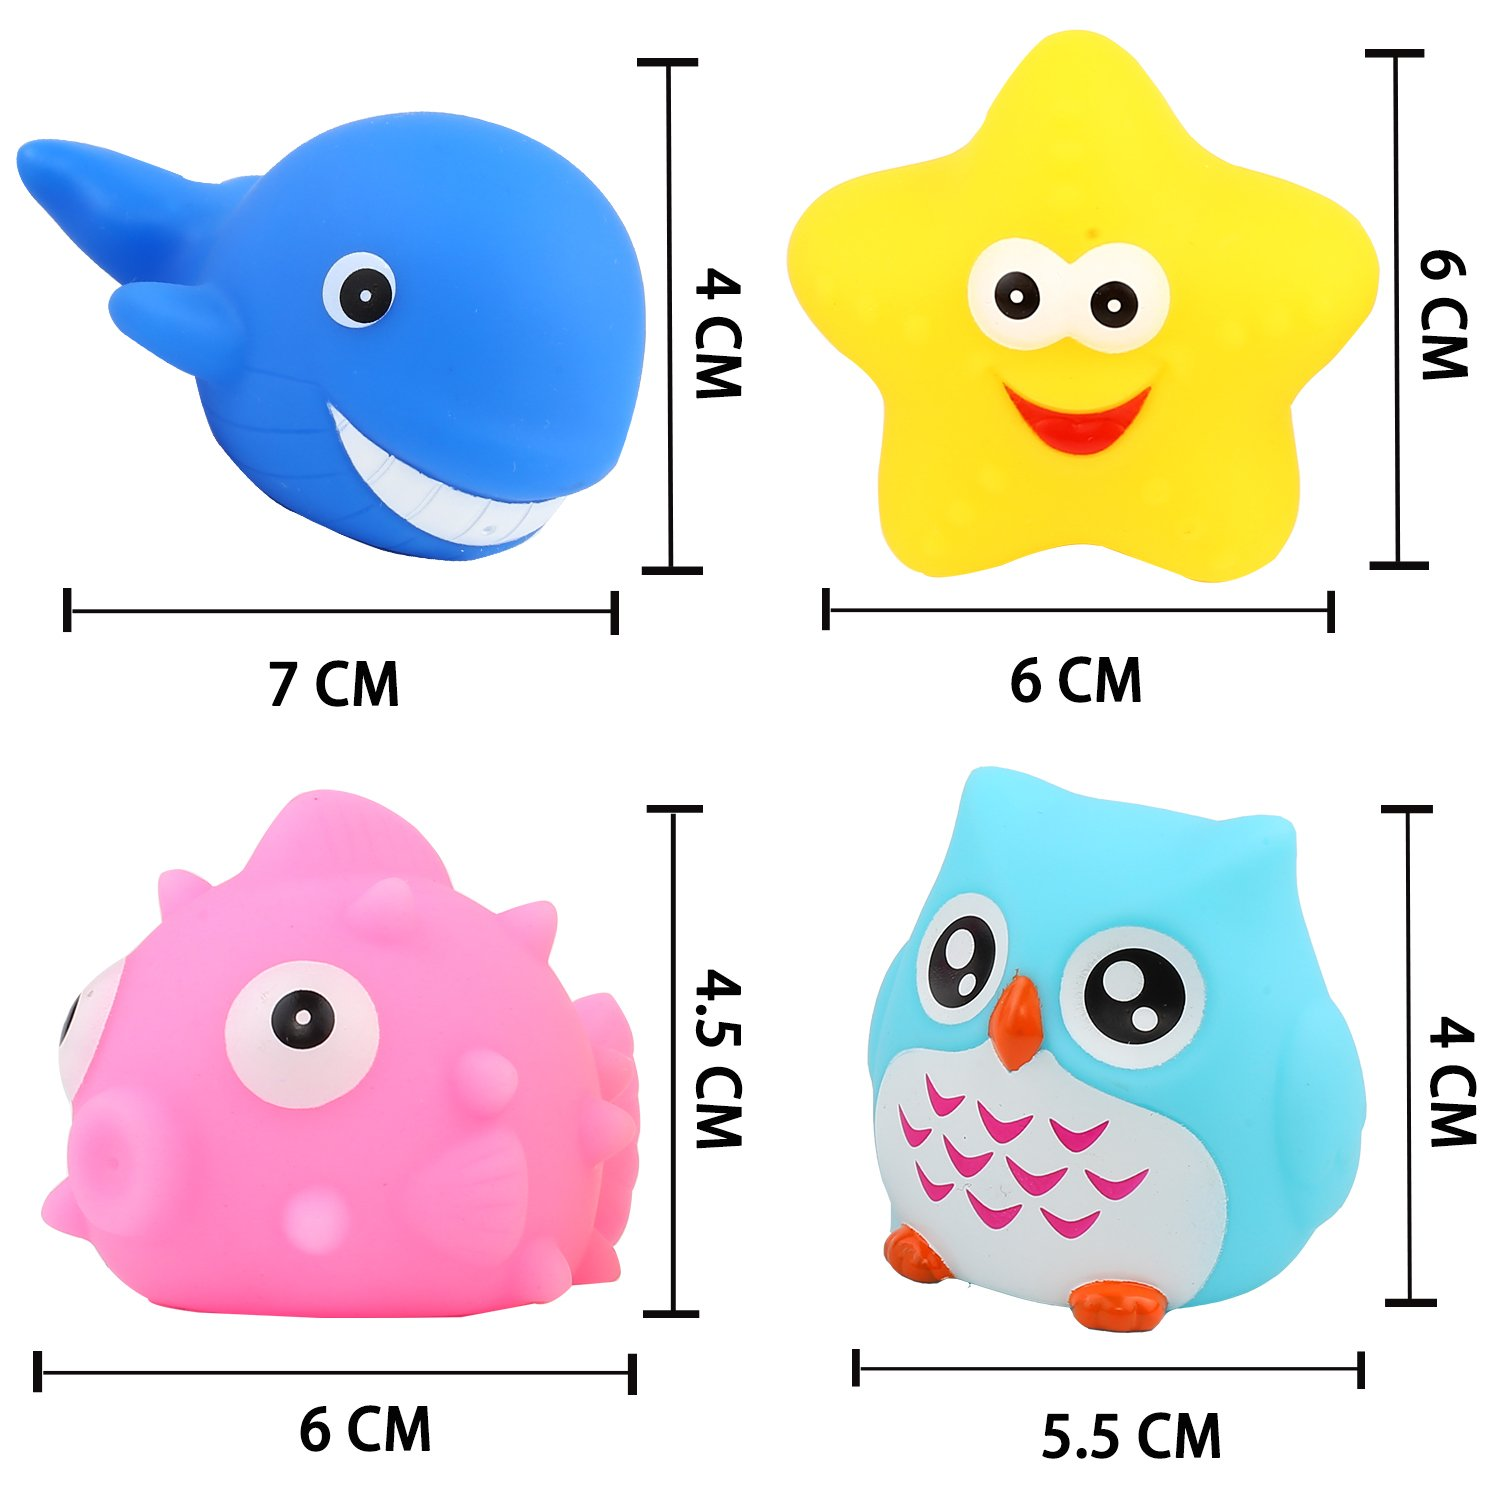 CHIMAGER Baby Infants Kids Toddler Child Preschool Bathtub Bathroom Shower Games Swimming Pool Party Flashing Color Changing Light in Water Bath Toys 8 Pcs Light Up Floating Rubber Animal Toys Set